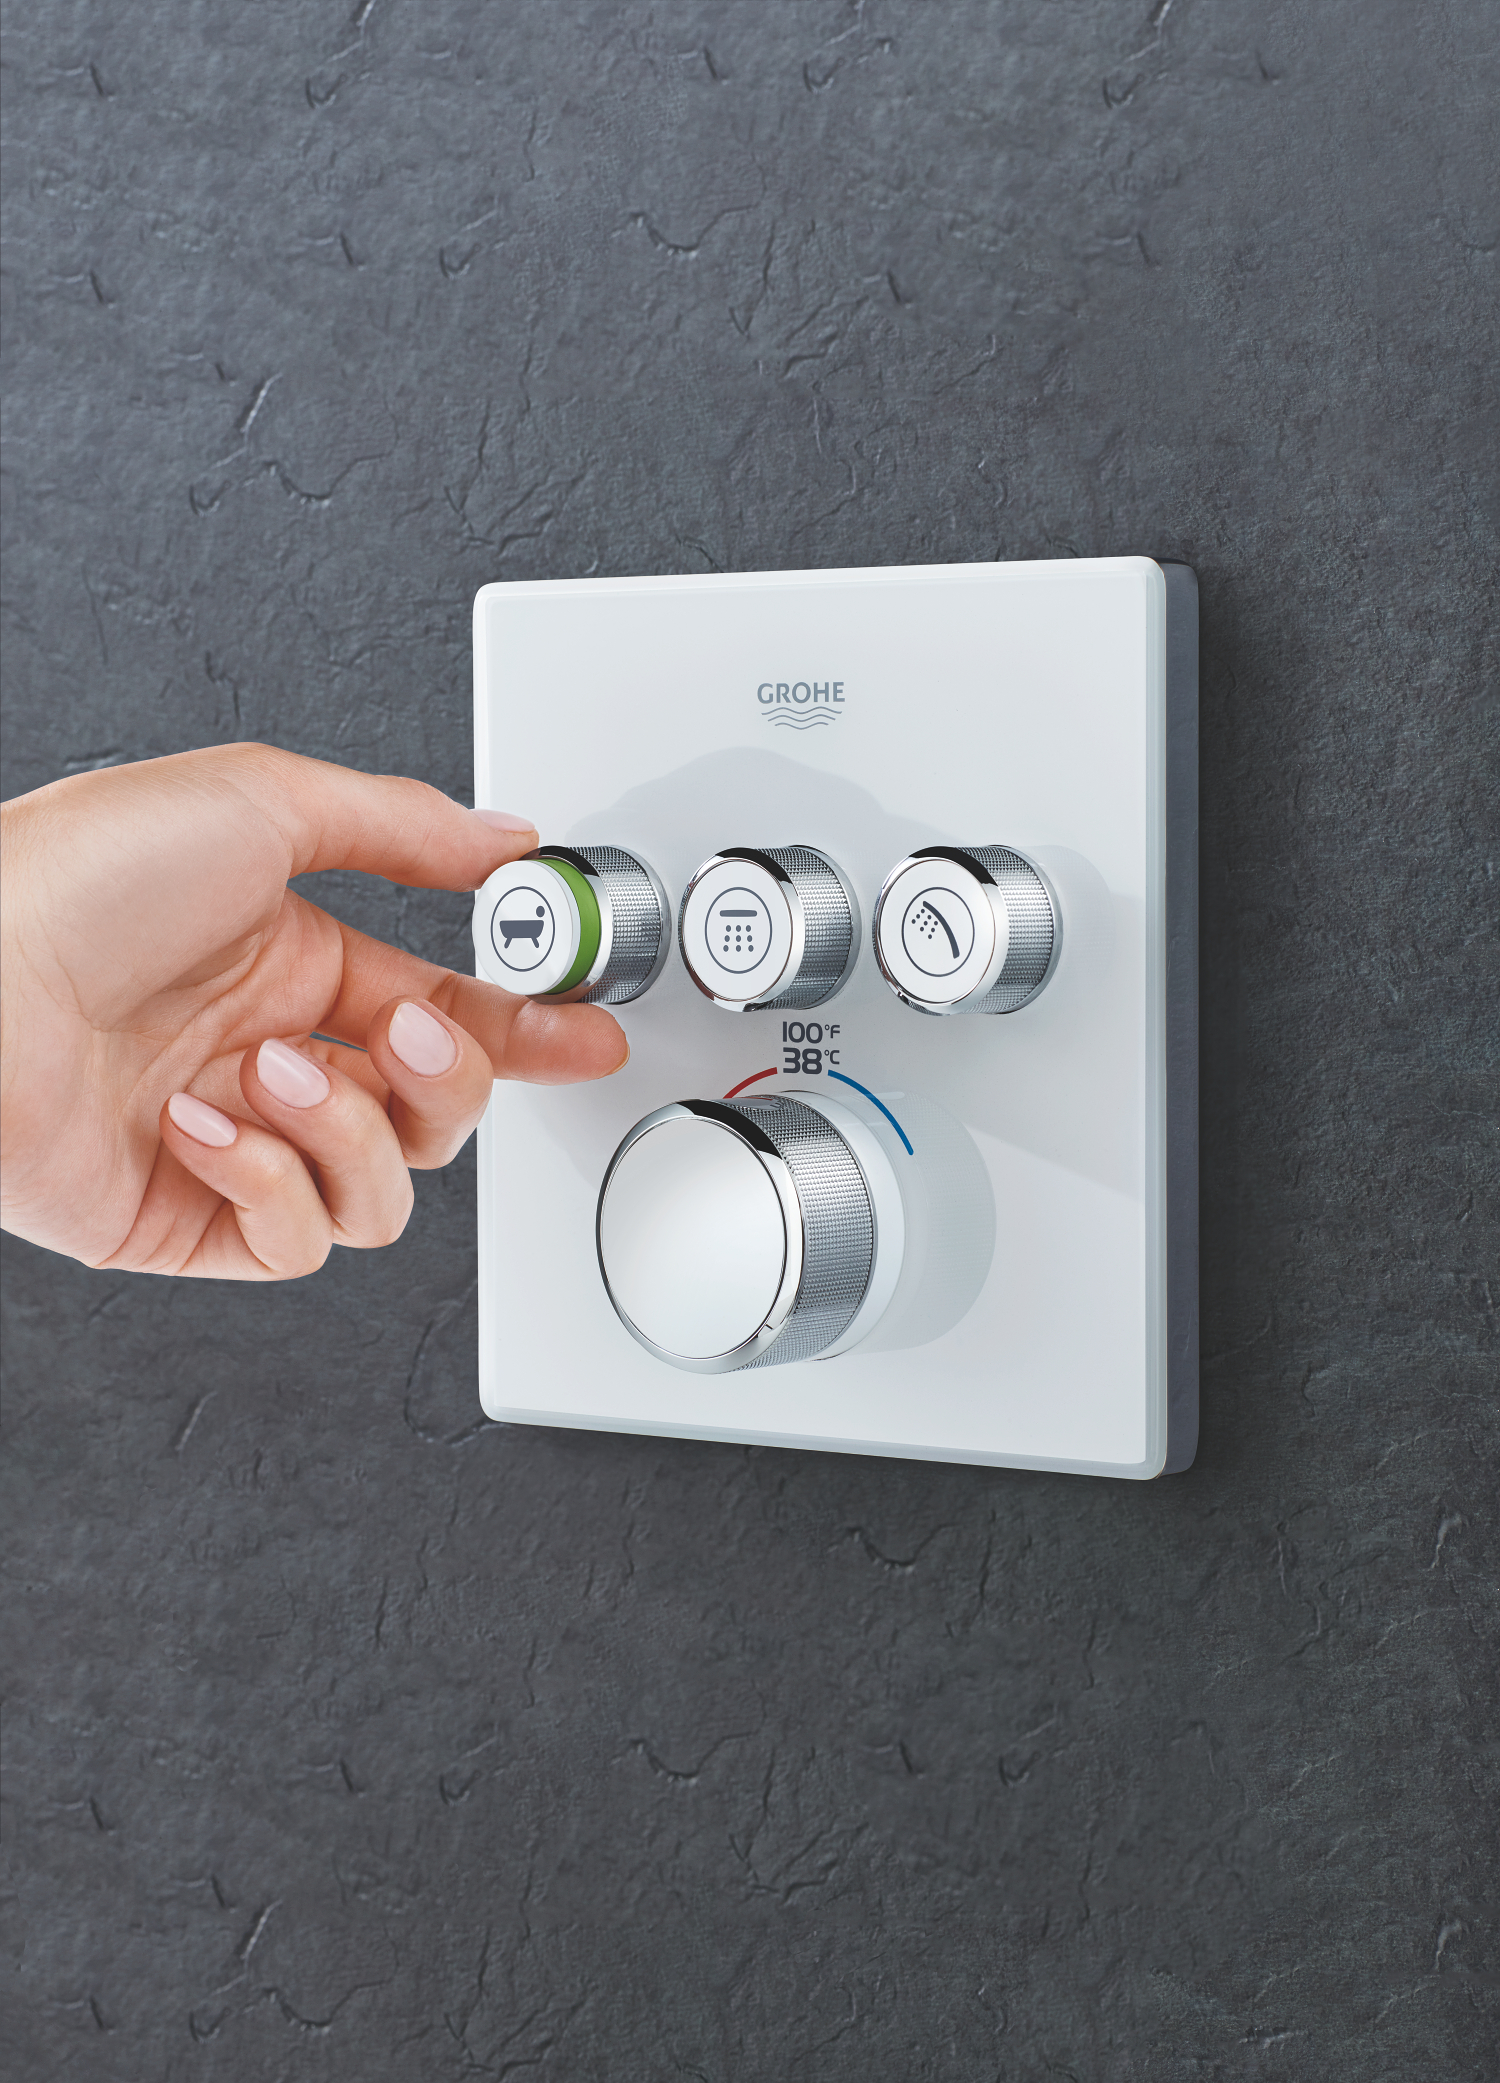 Grohe shower controls with push buttons #grohe #kbis2018 #shower #bathroomdesign